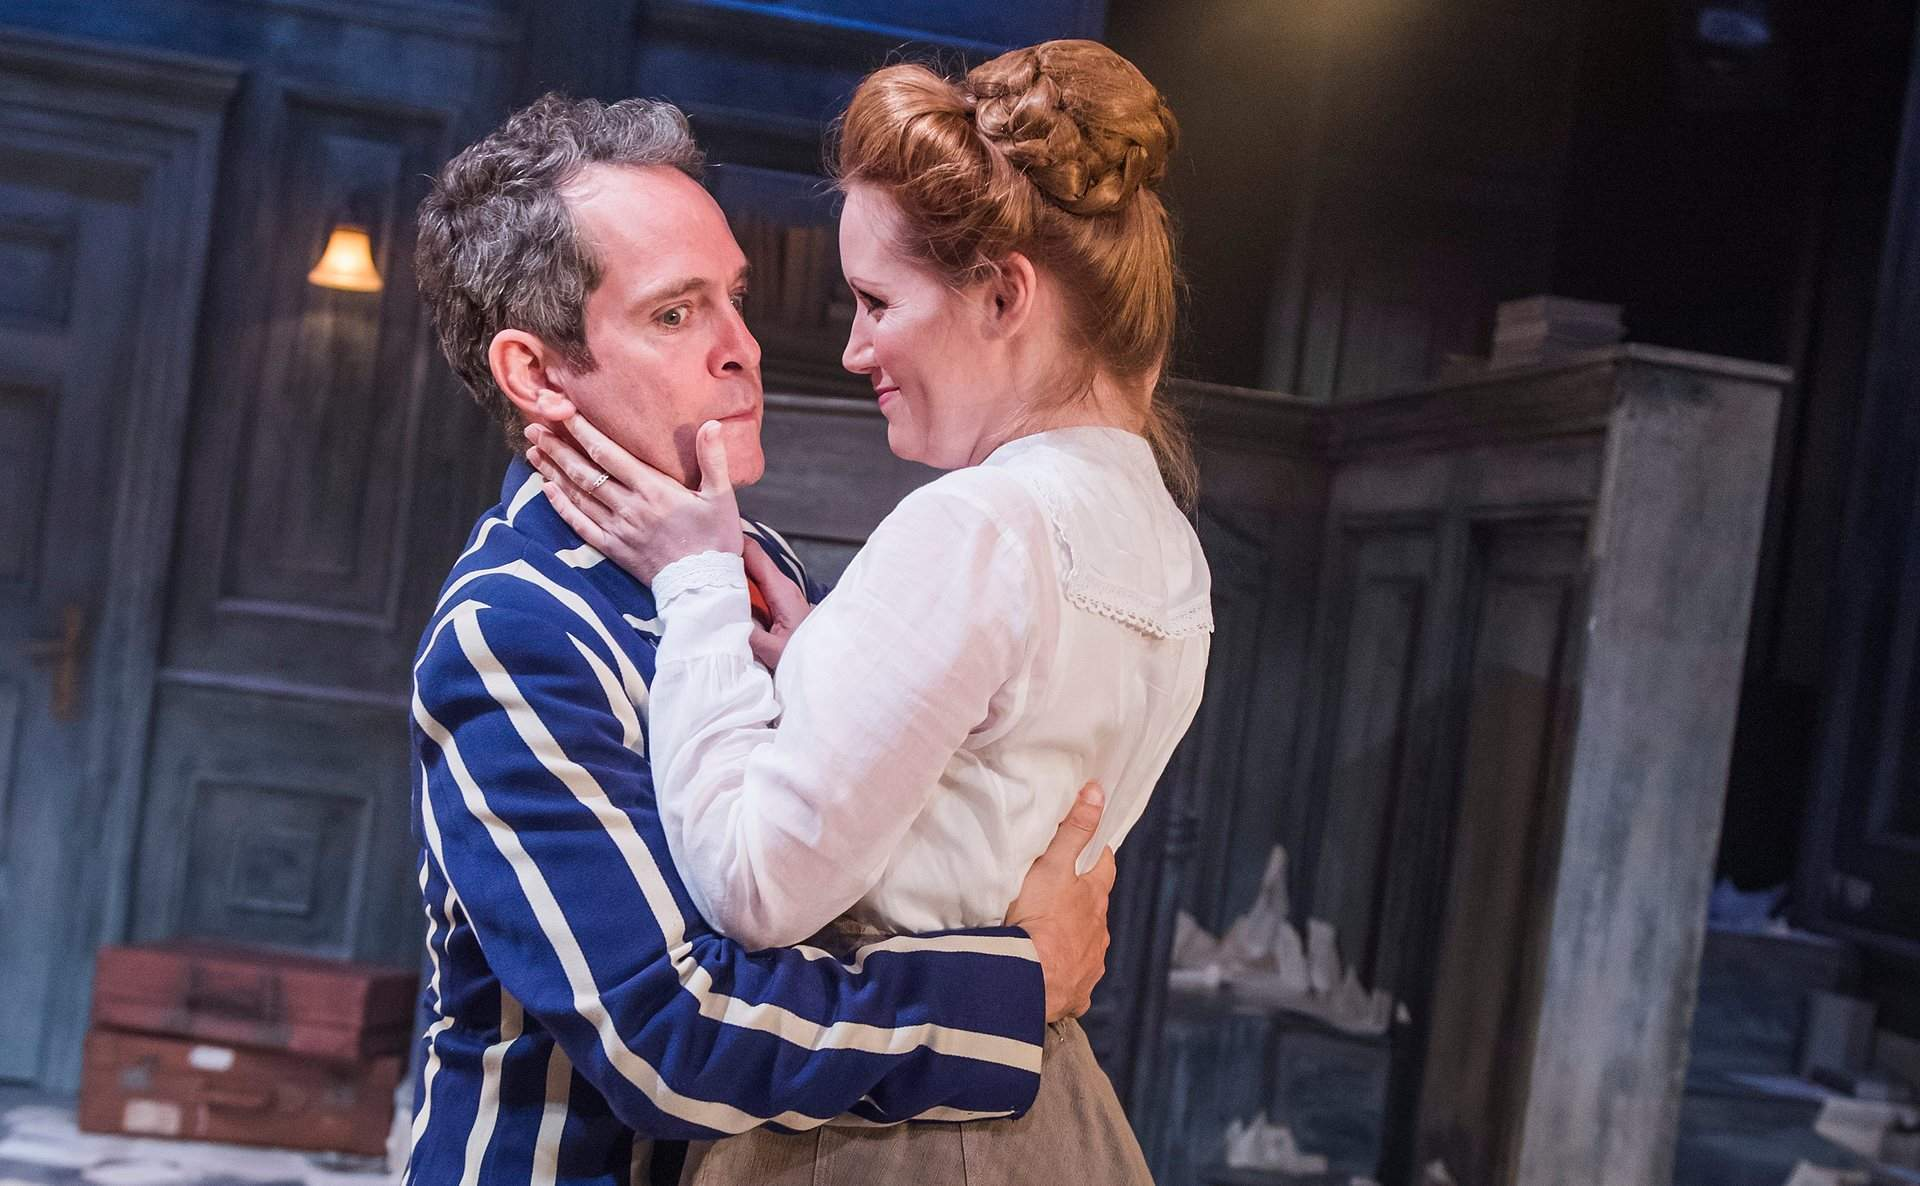 Patrick Marber's dynamic revival of Tom Stoppard's Travesties is anything but one